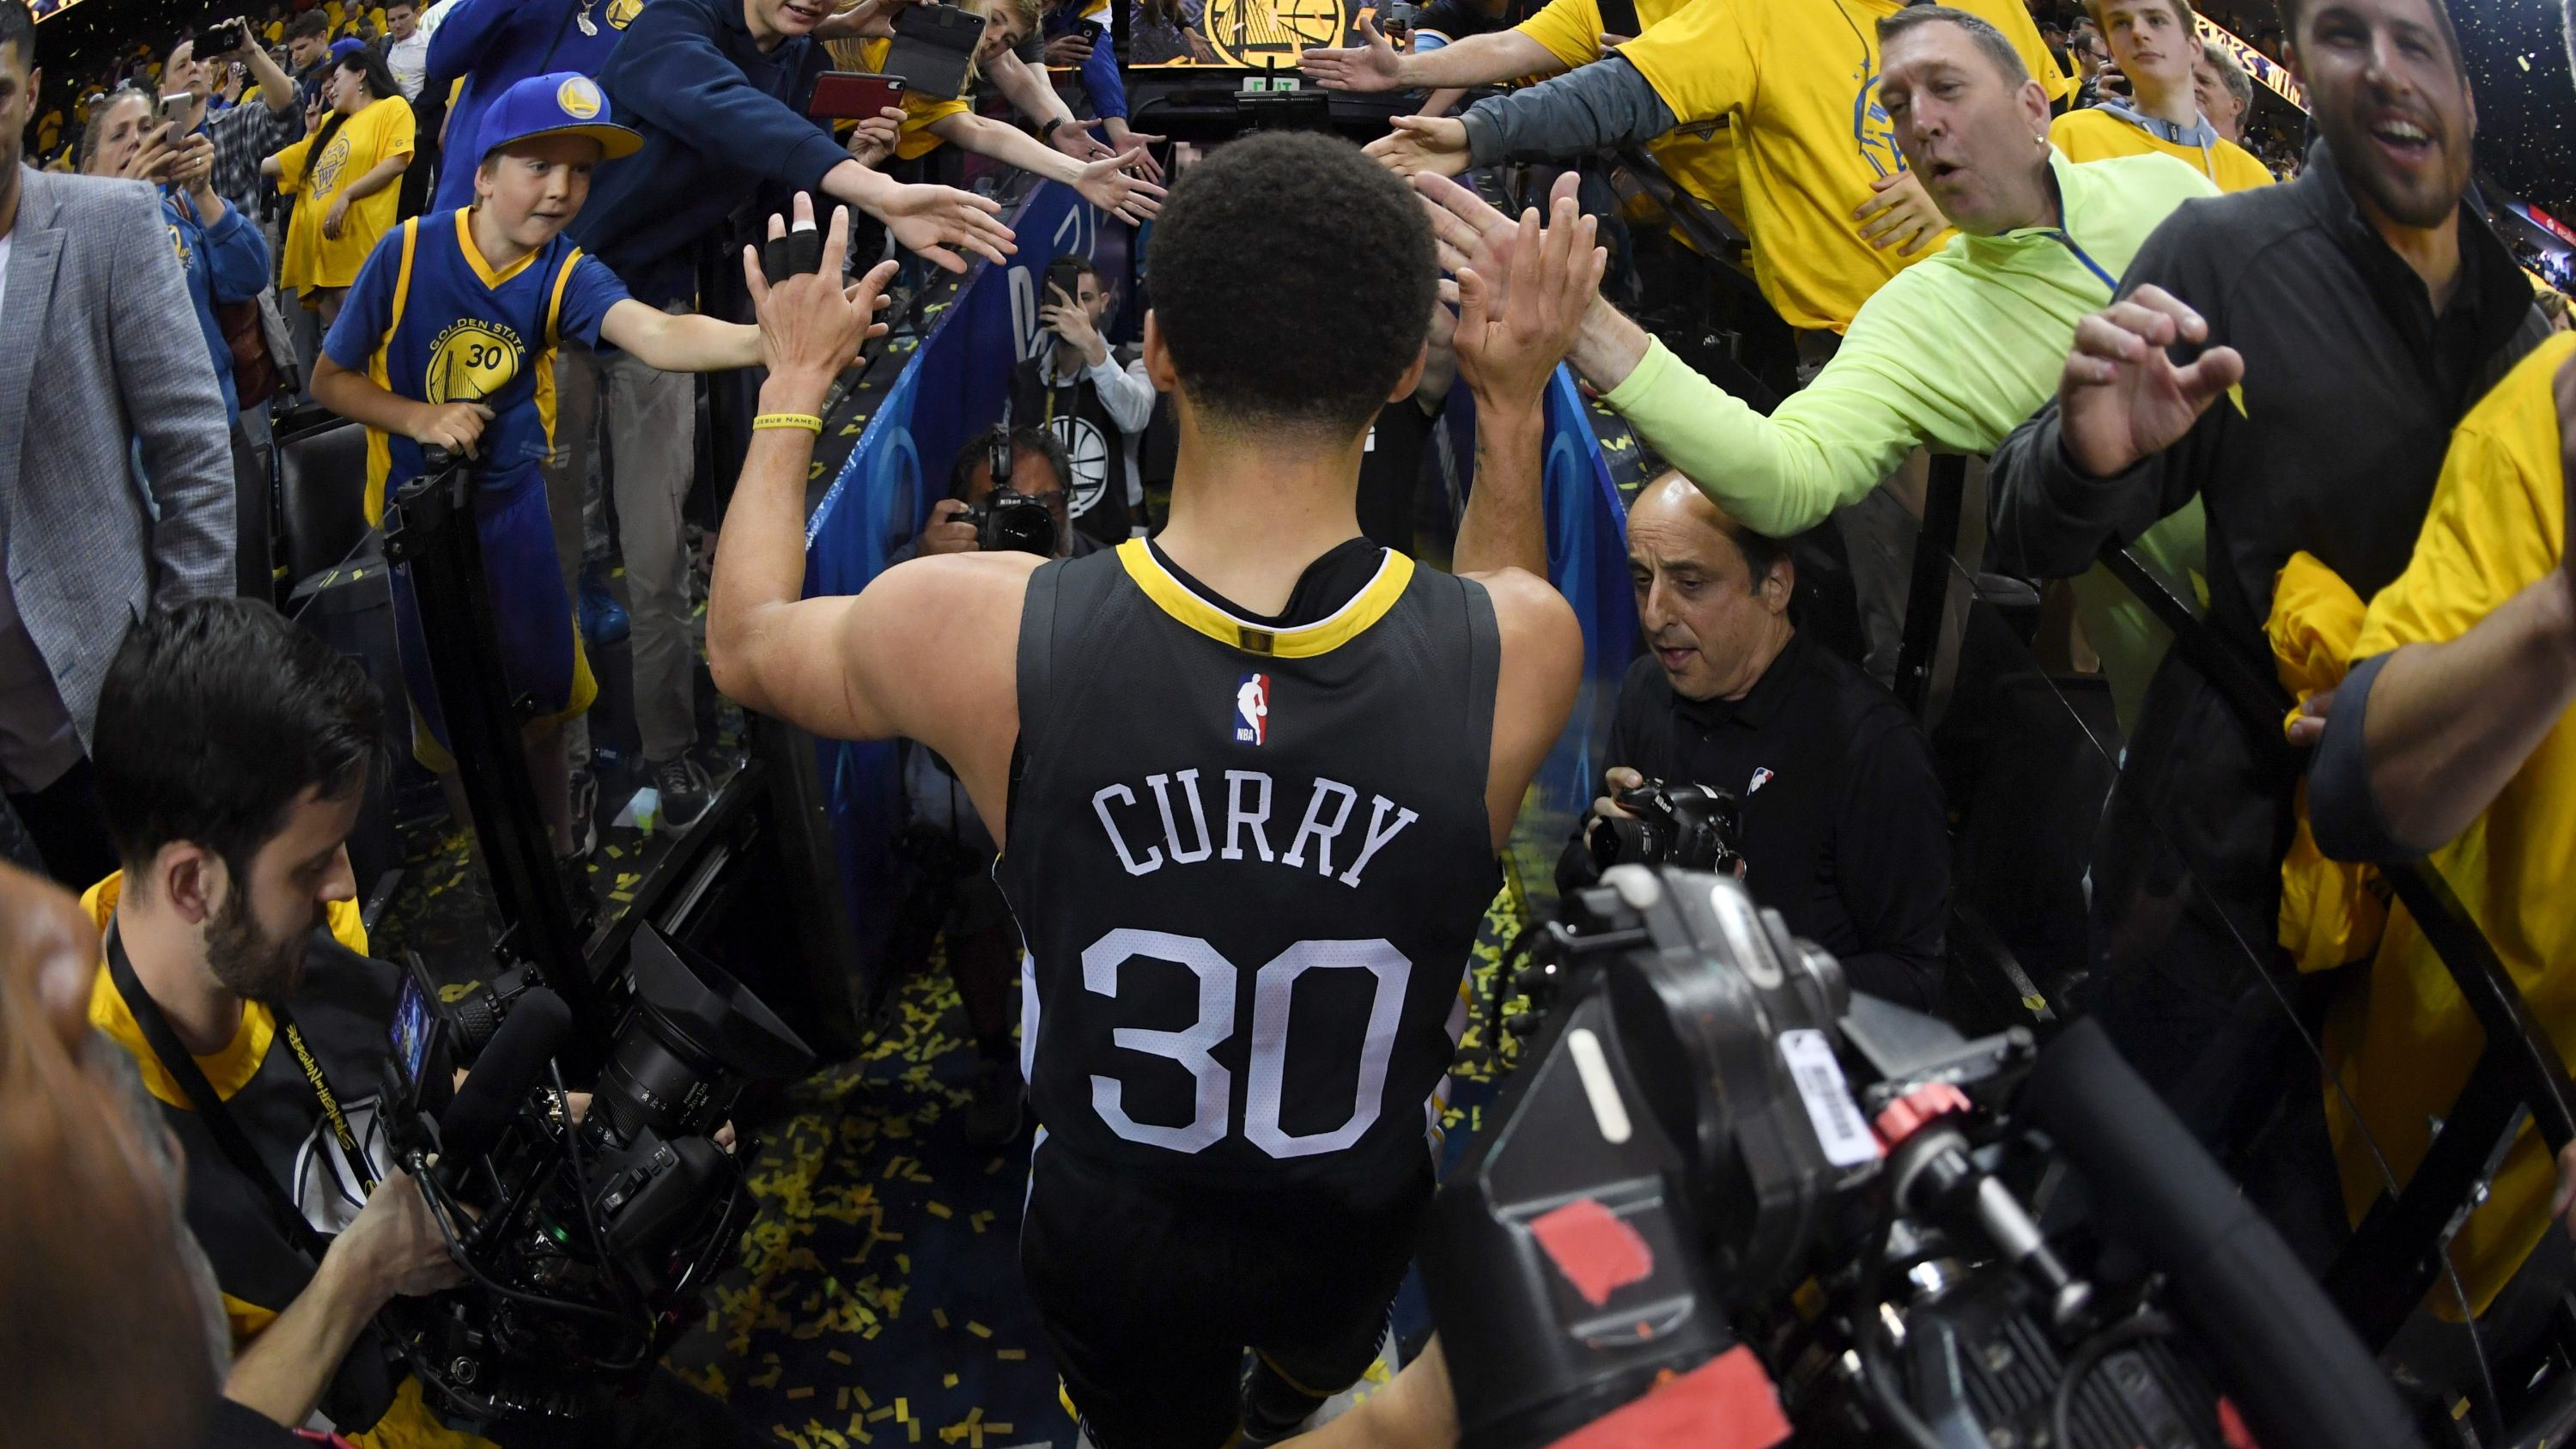 f6bbf9495c1 'Thank You, Oakland' — Steph Curry's gift to influential people in his  career Read now